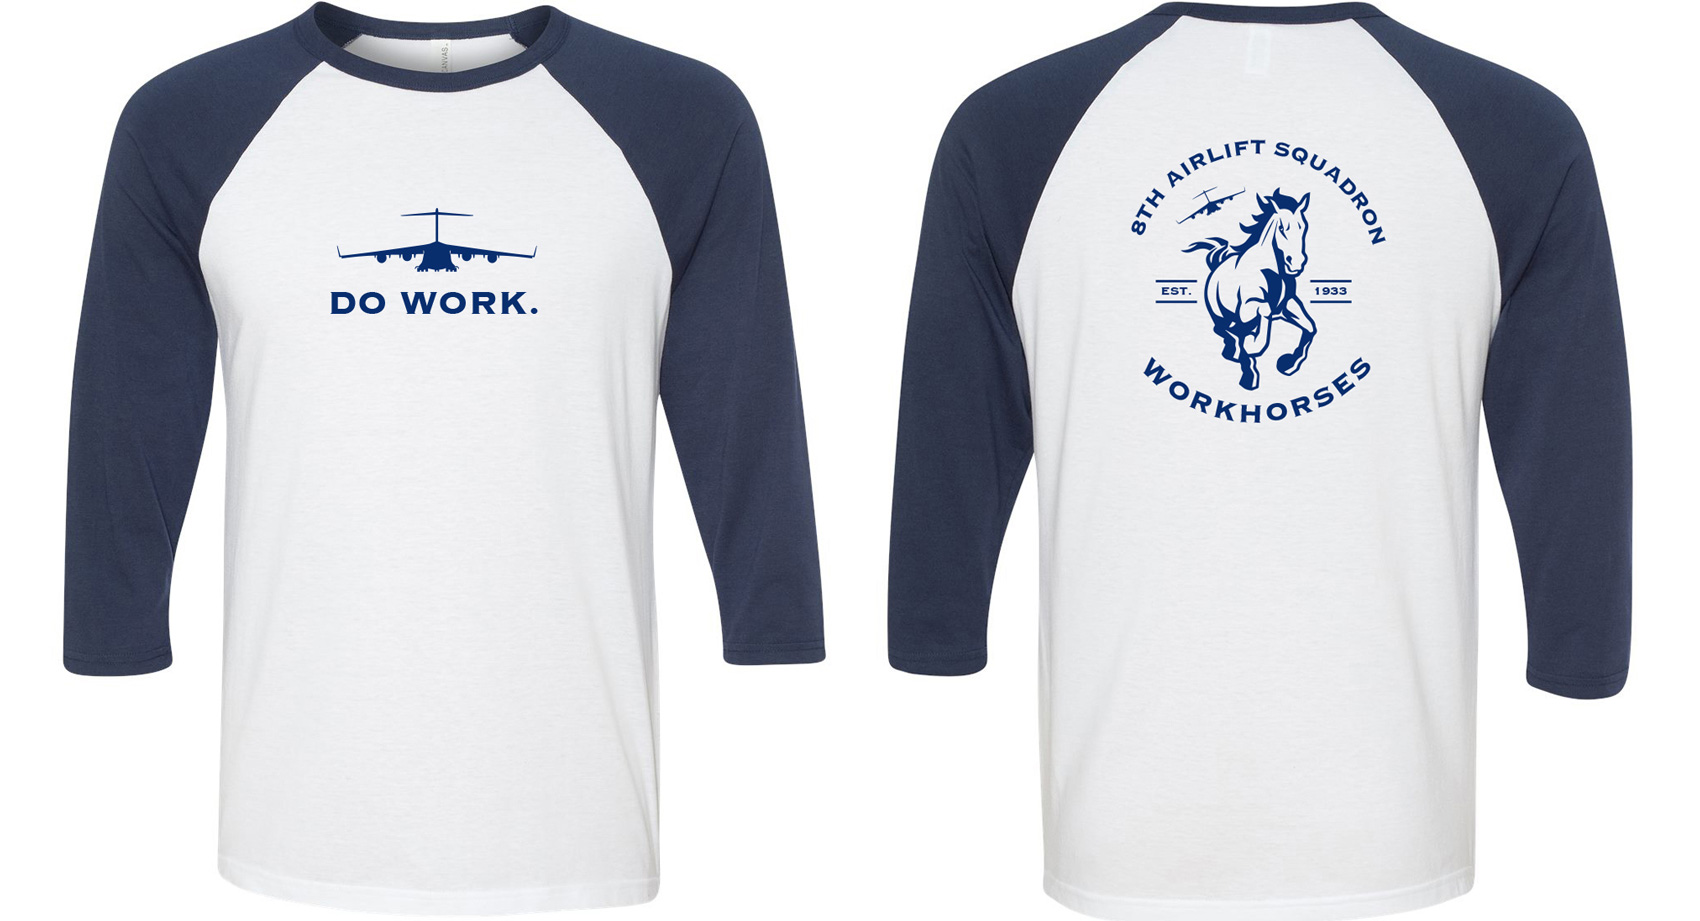 Workhorse-T-shirts